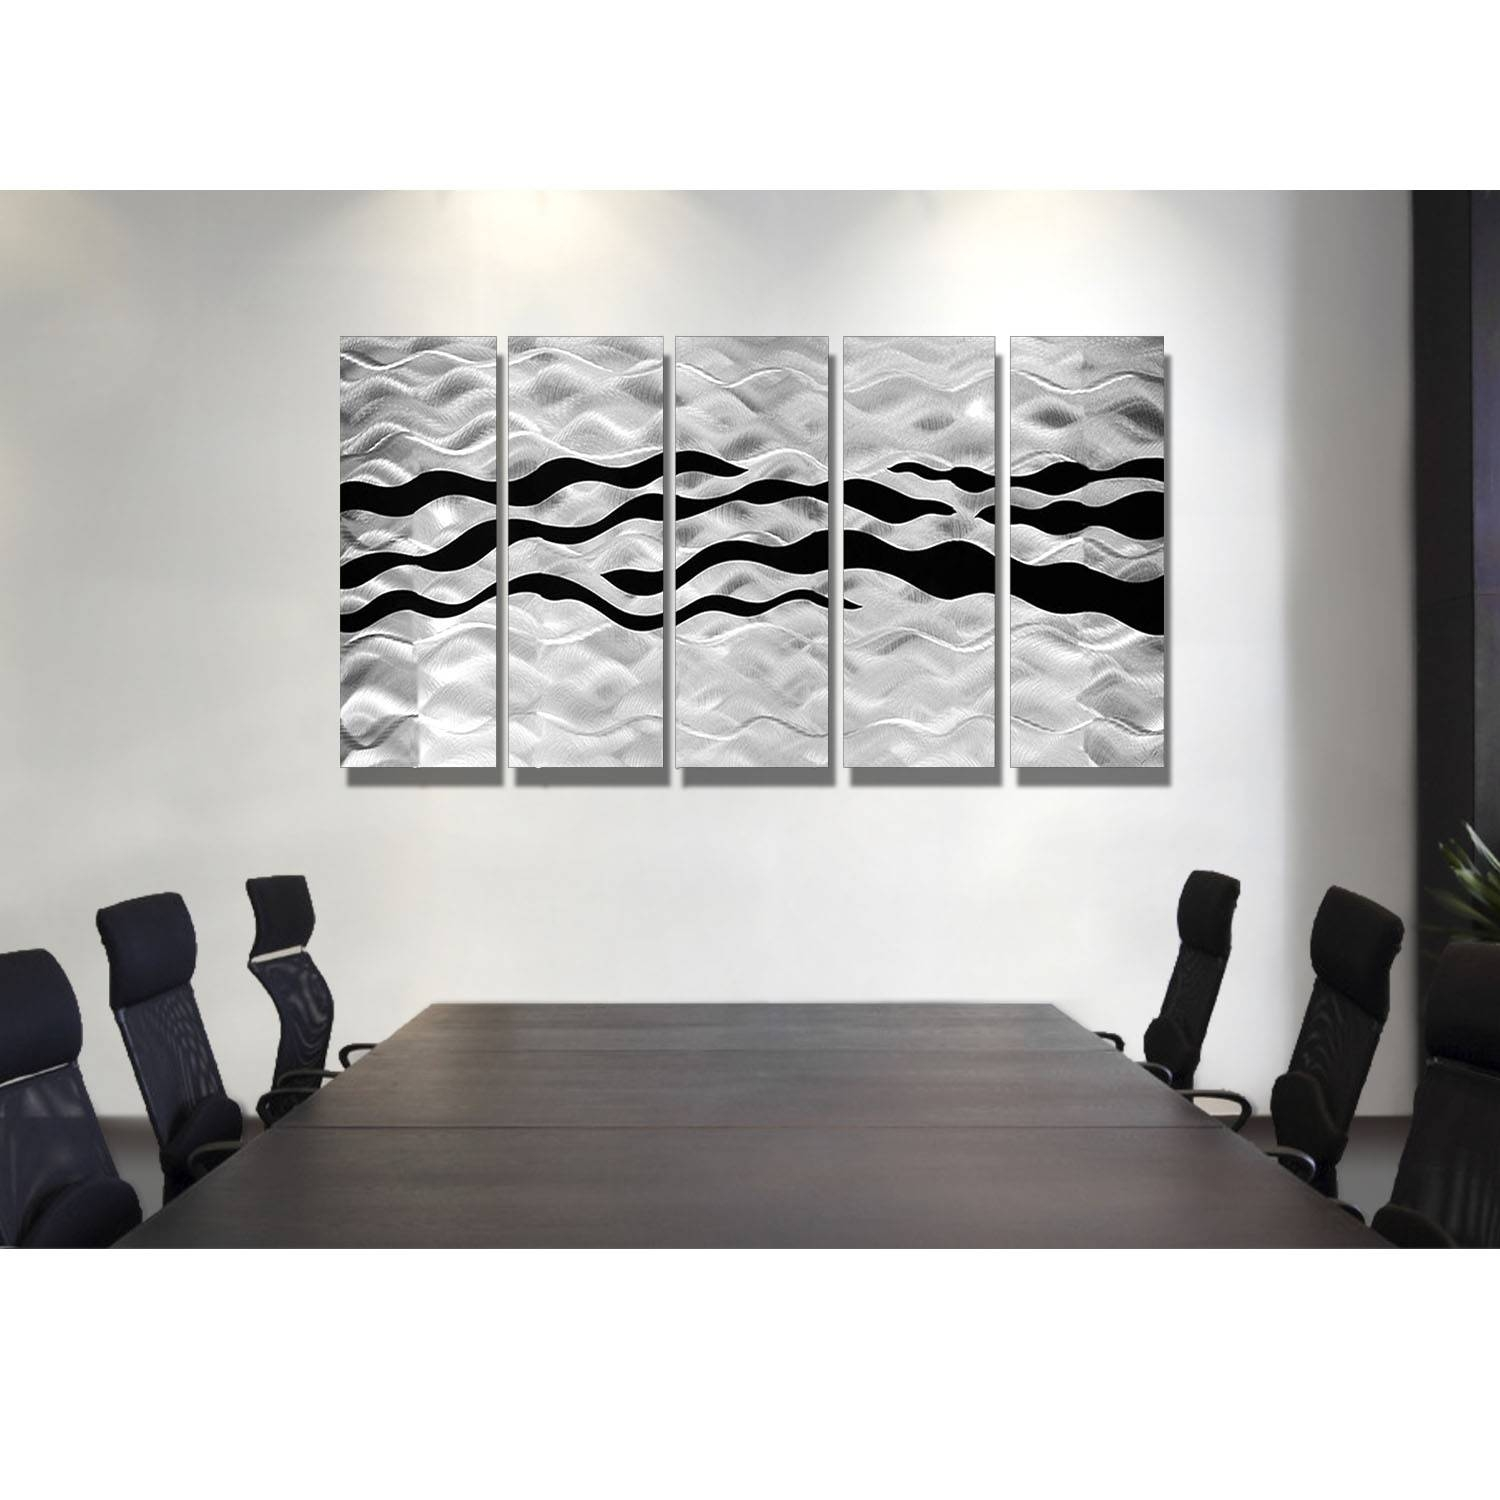 Onyx Oceana – Silver And Black Metal Wall Art – 5 Panel Wall Décor Regarding Latest Black And Silver Metal Wall Art (View 9 of 20)